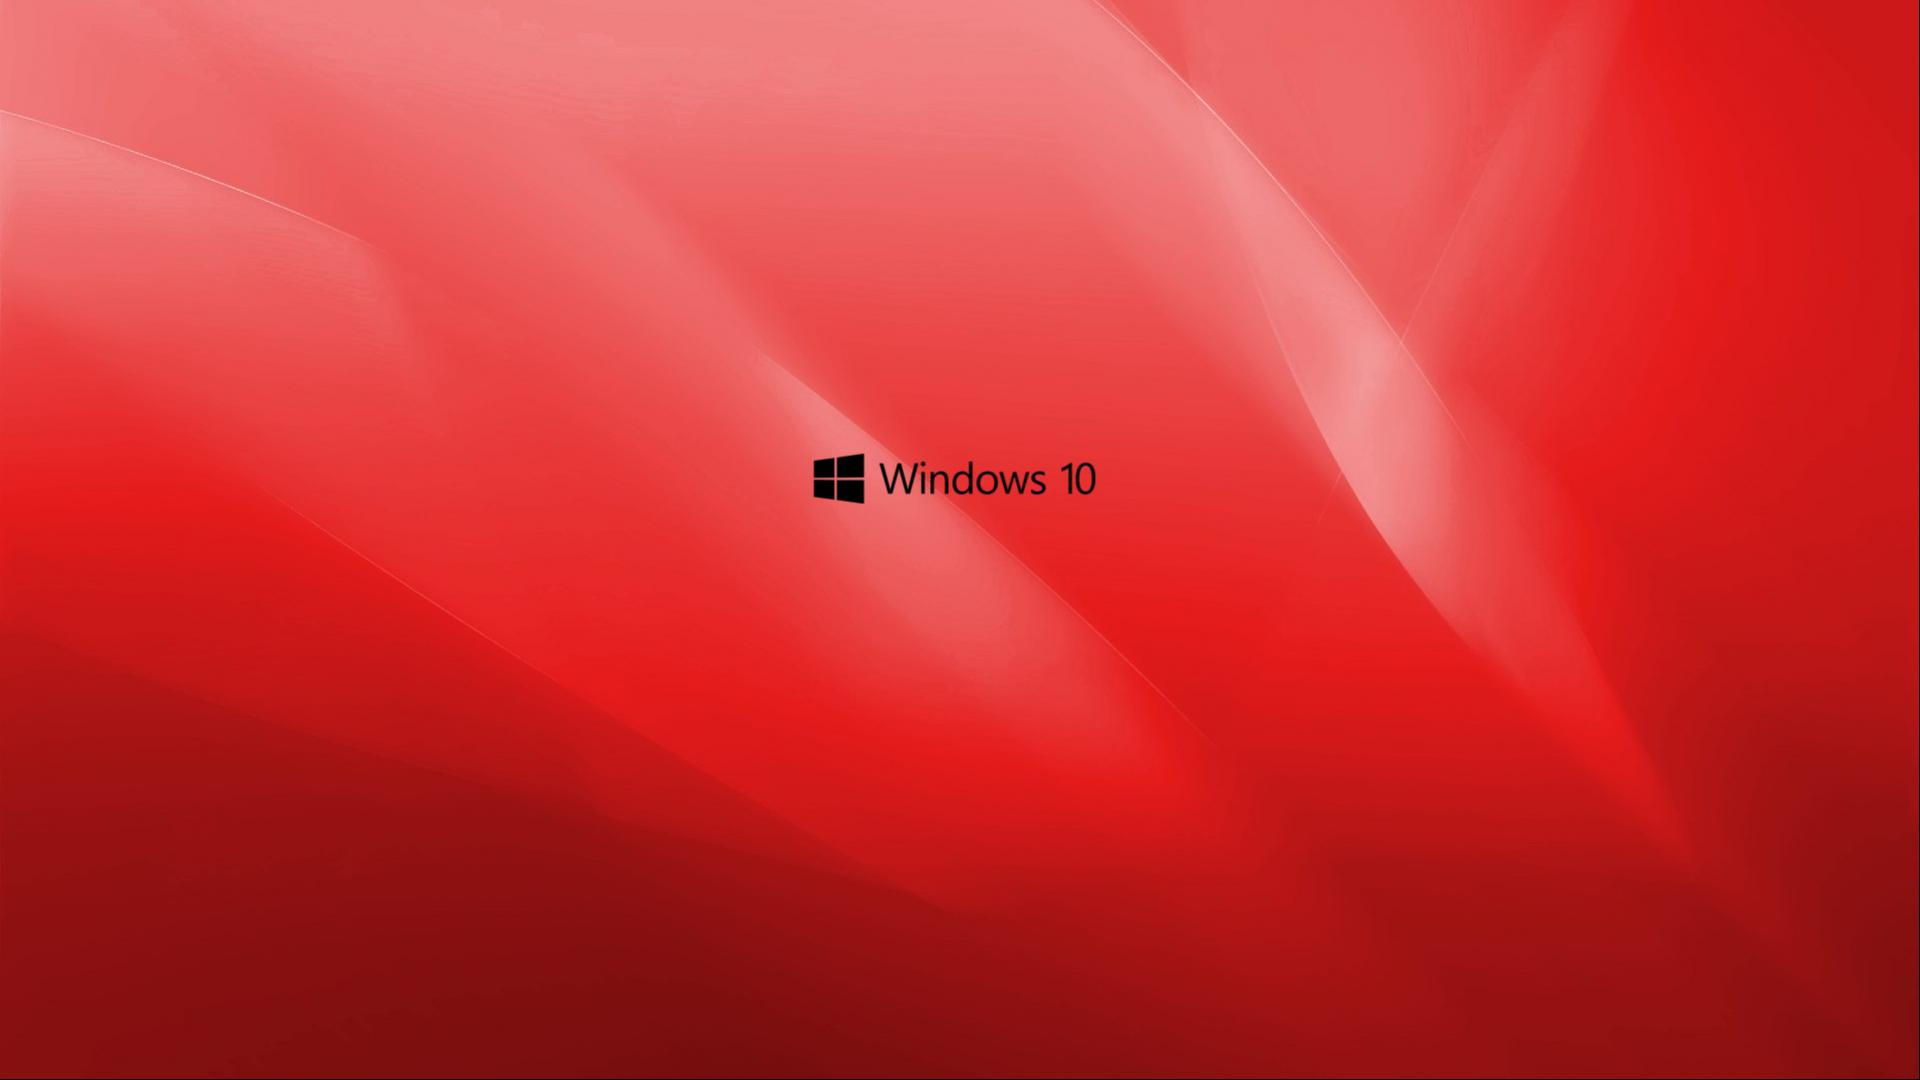 windows 10 wallpaper red with black logo hd wallpapers